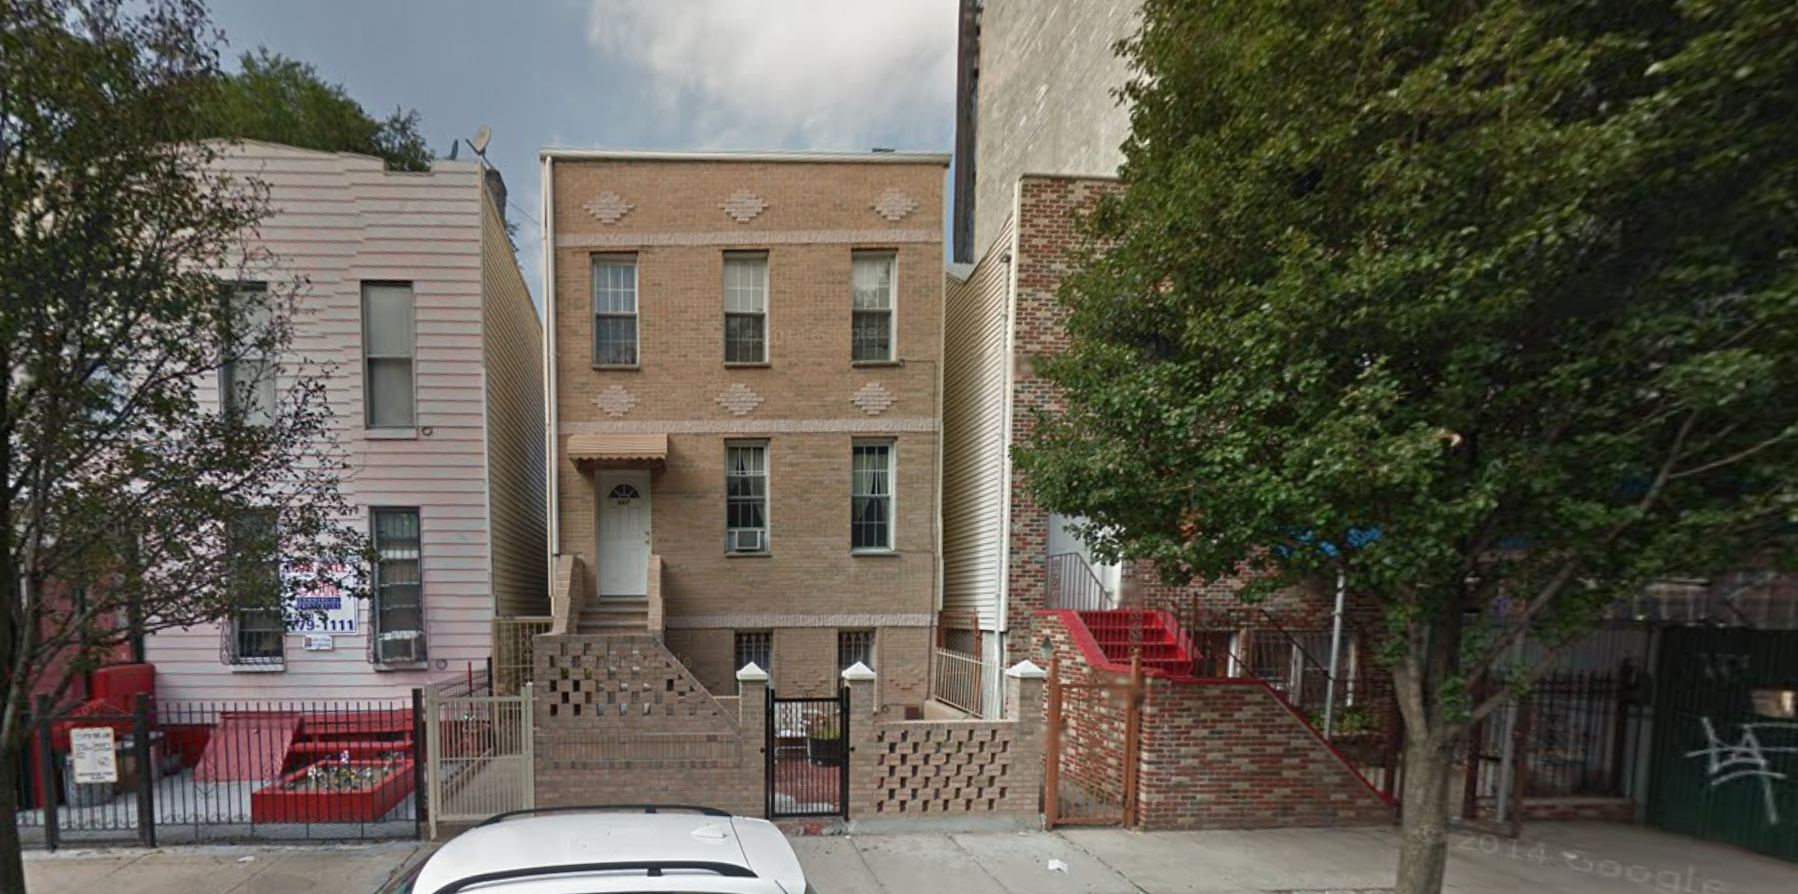 989 Willoughby Avenue, image via Google Maps